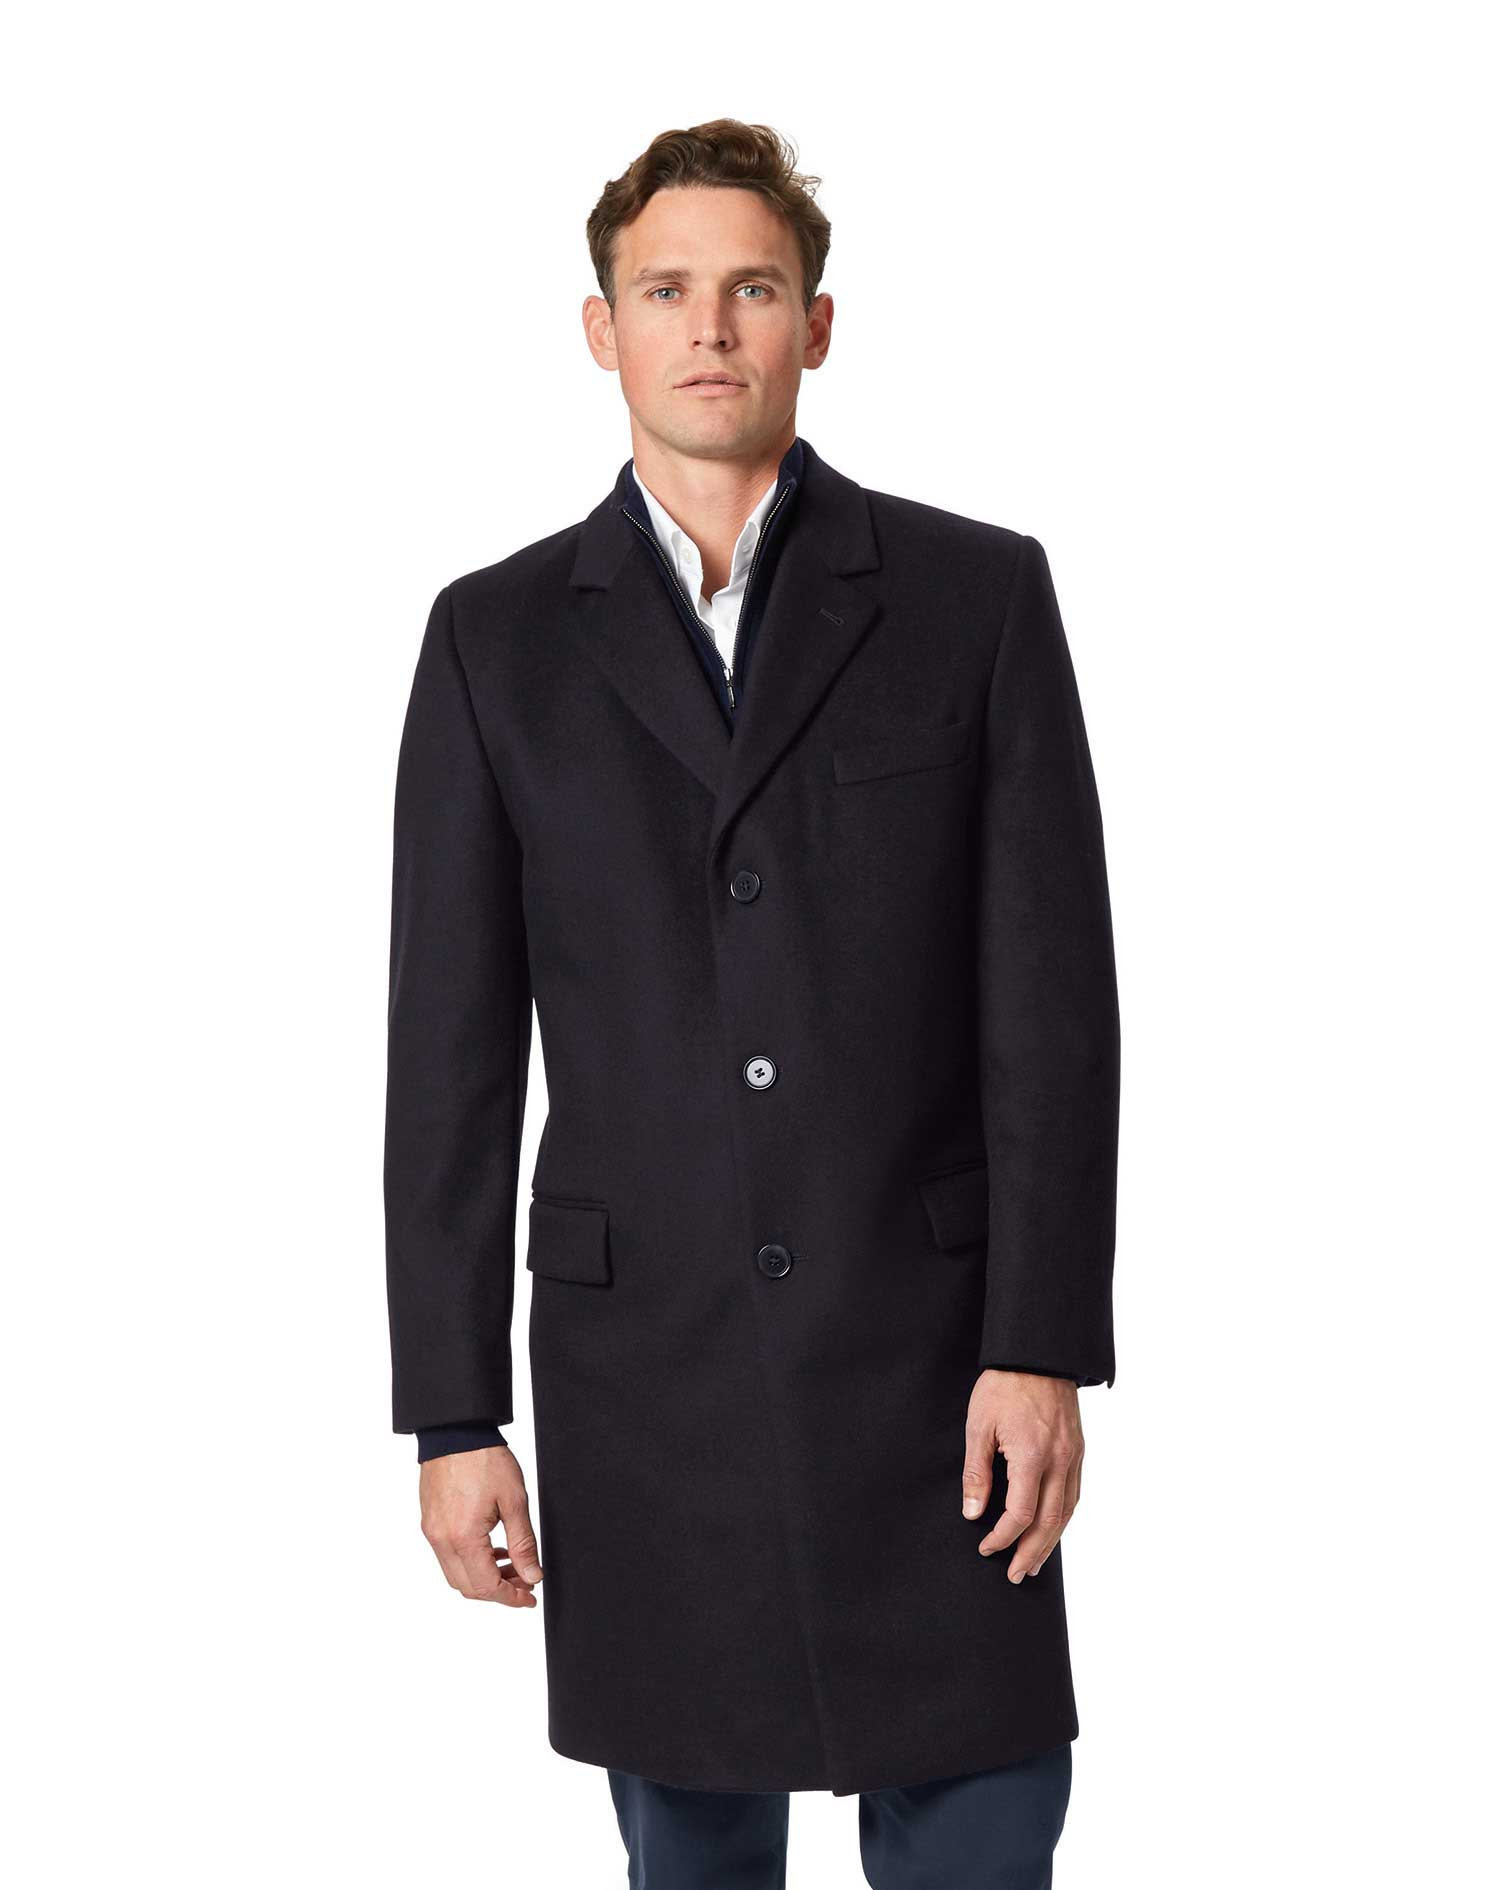 Navy Wool and Cashmere Overcoat Size 42 Regular by Charles Tyrwhitt